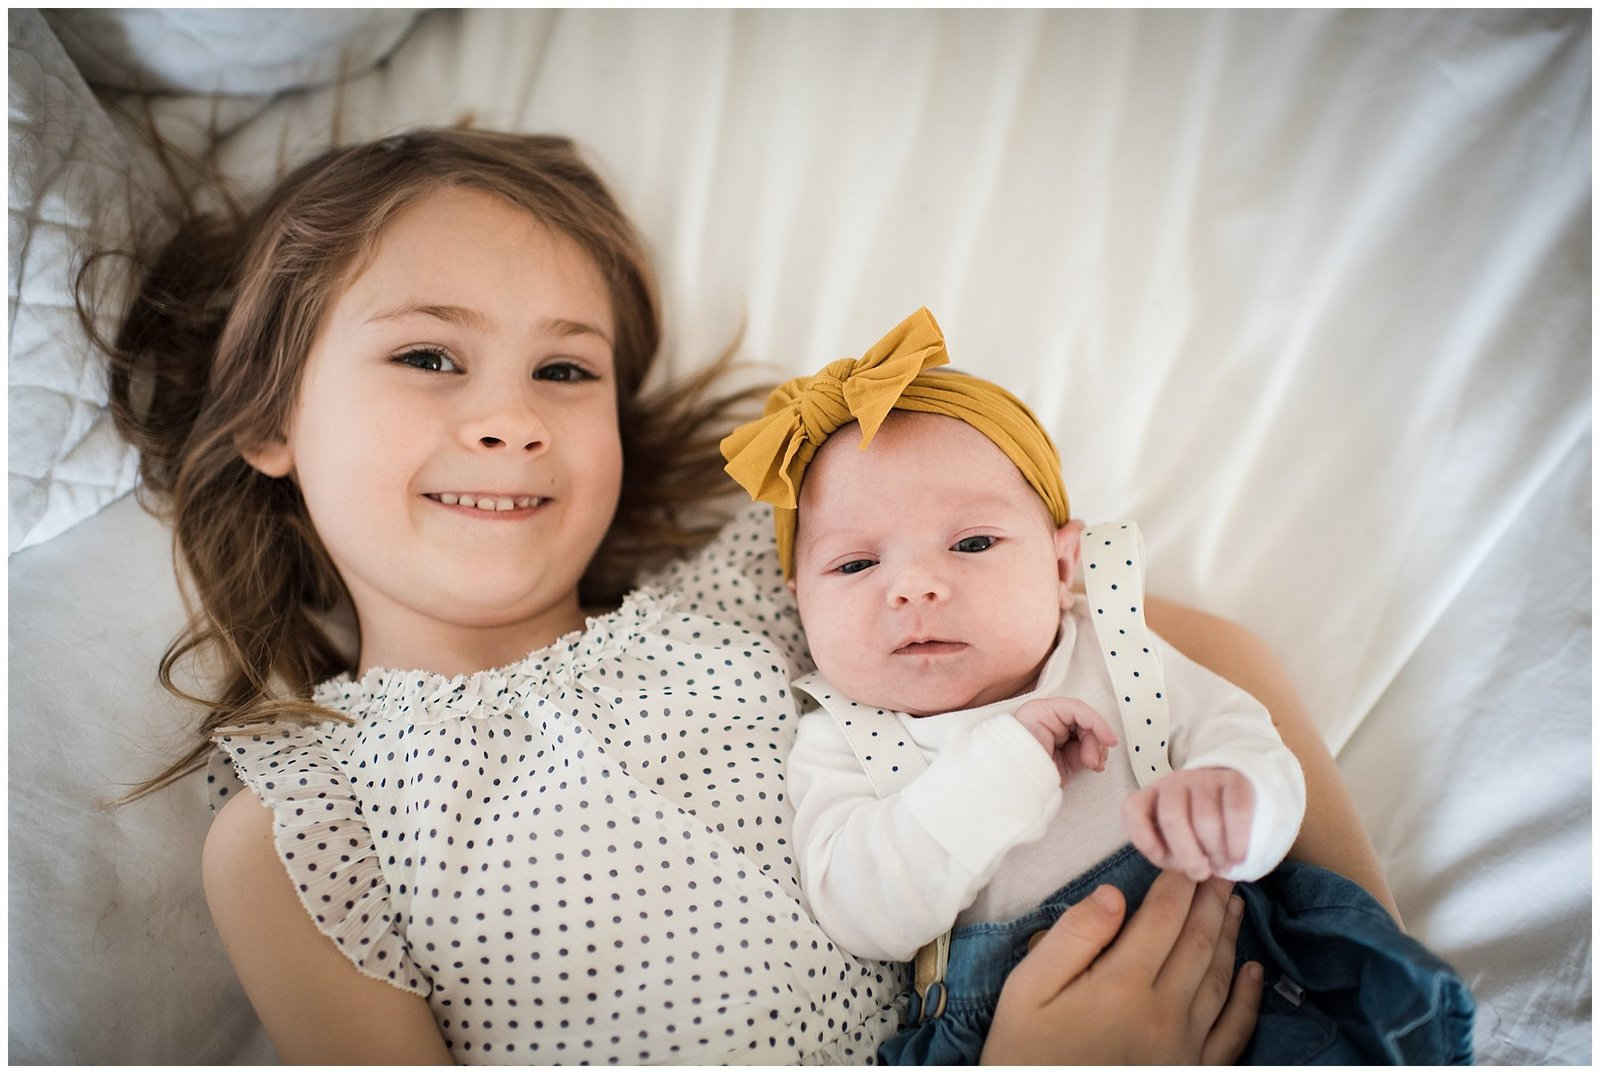 Big sister cuddling new baby sister on bed Emily Ann Photography Seattle Photographer